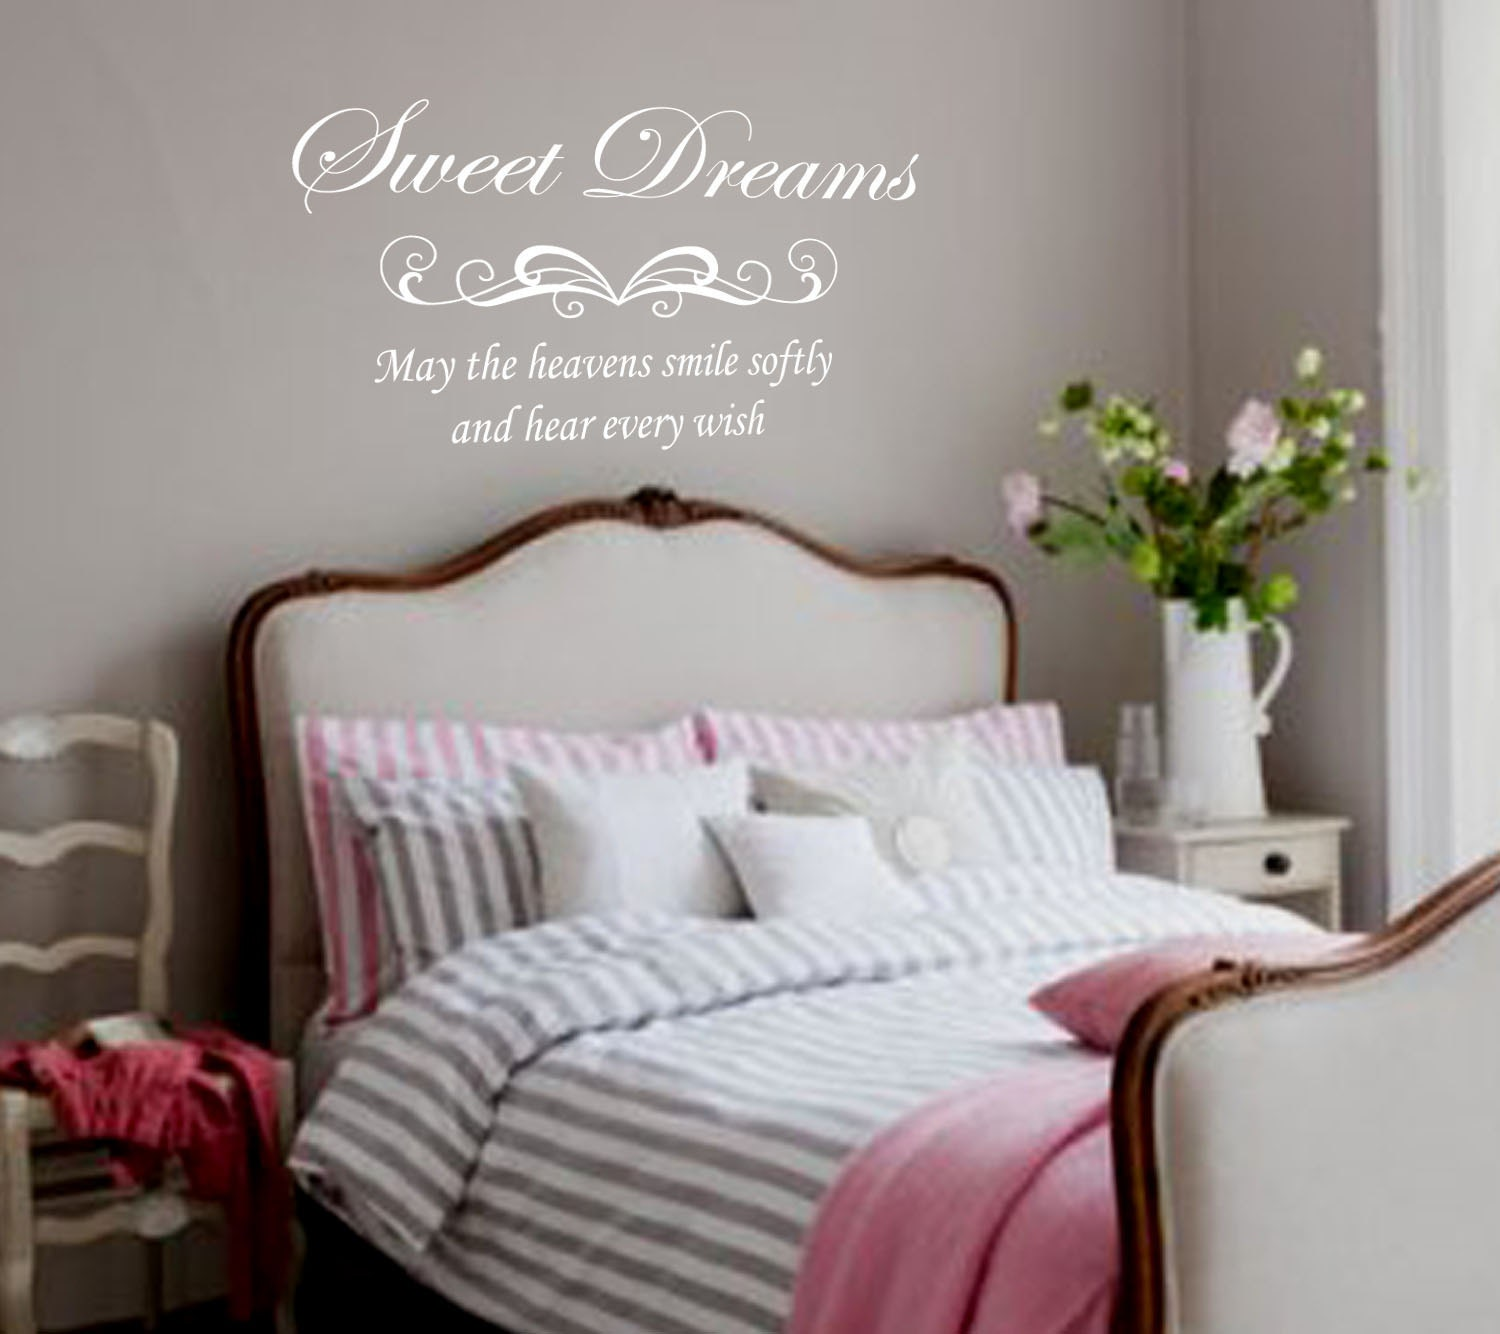 Bedroom Wall Decals Bedroom Wall Decal Sweet Dreams Removable Vinyl  Lettering